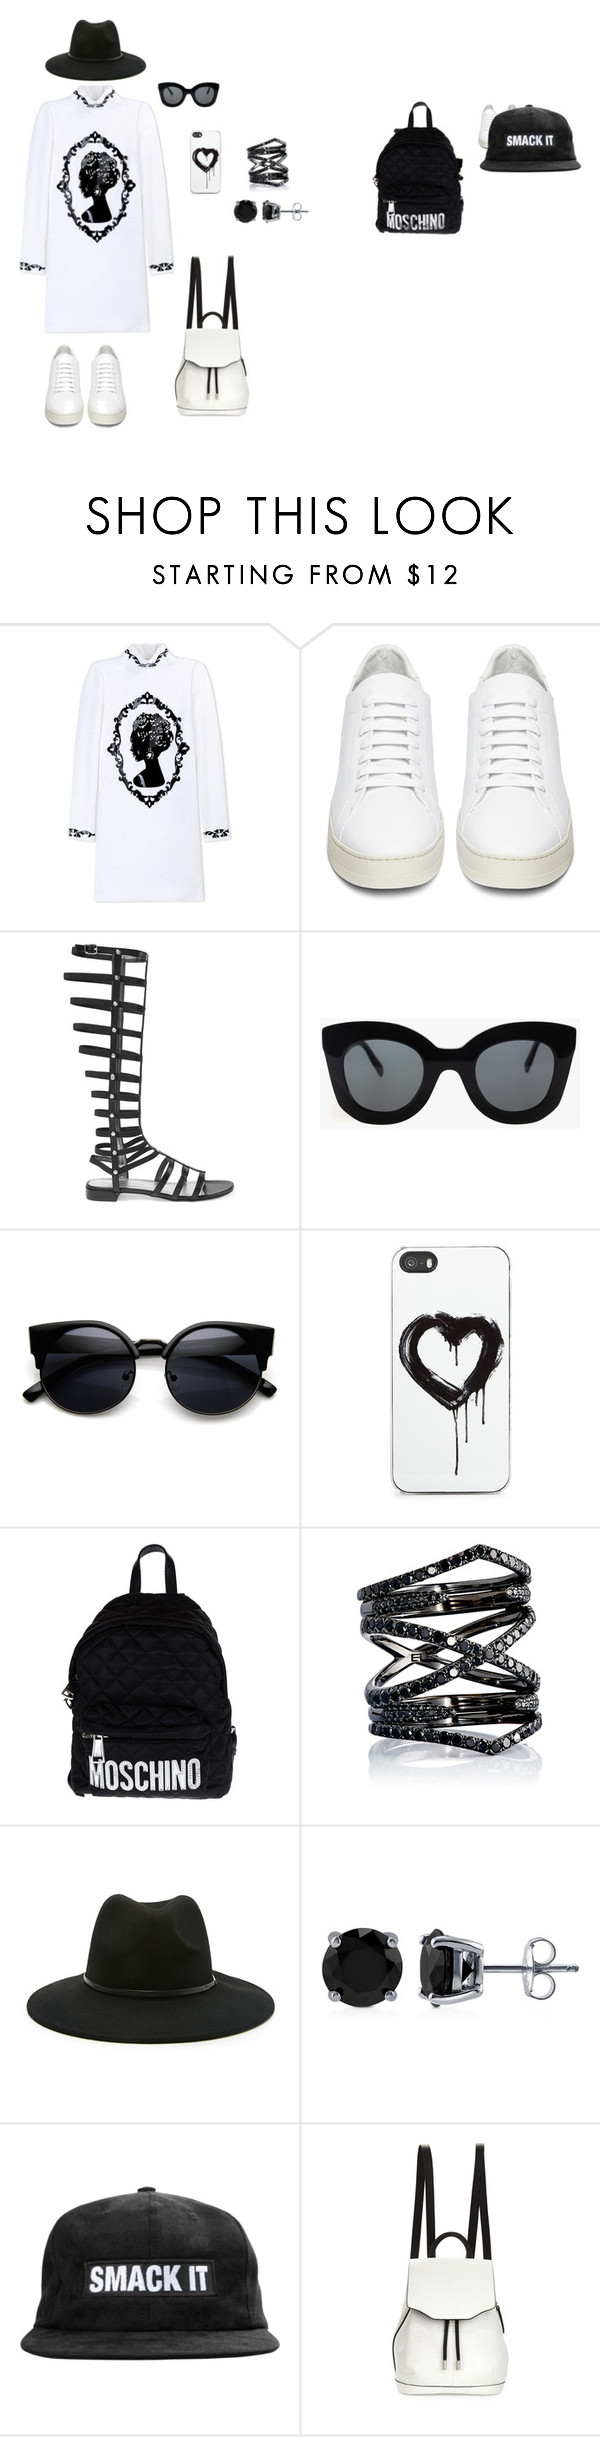 """Black and white"" by helenkraft17 on Polyvore featuring мода, Dolce&Gabbana, Off-White, Stuart Weitzman, CÉLINE, Zero Gravity, Moschino, Eva Fehren, Forever 21 и BERRICLE"